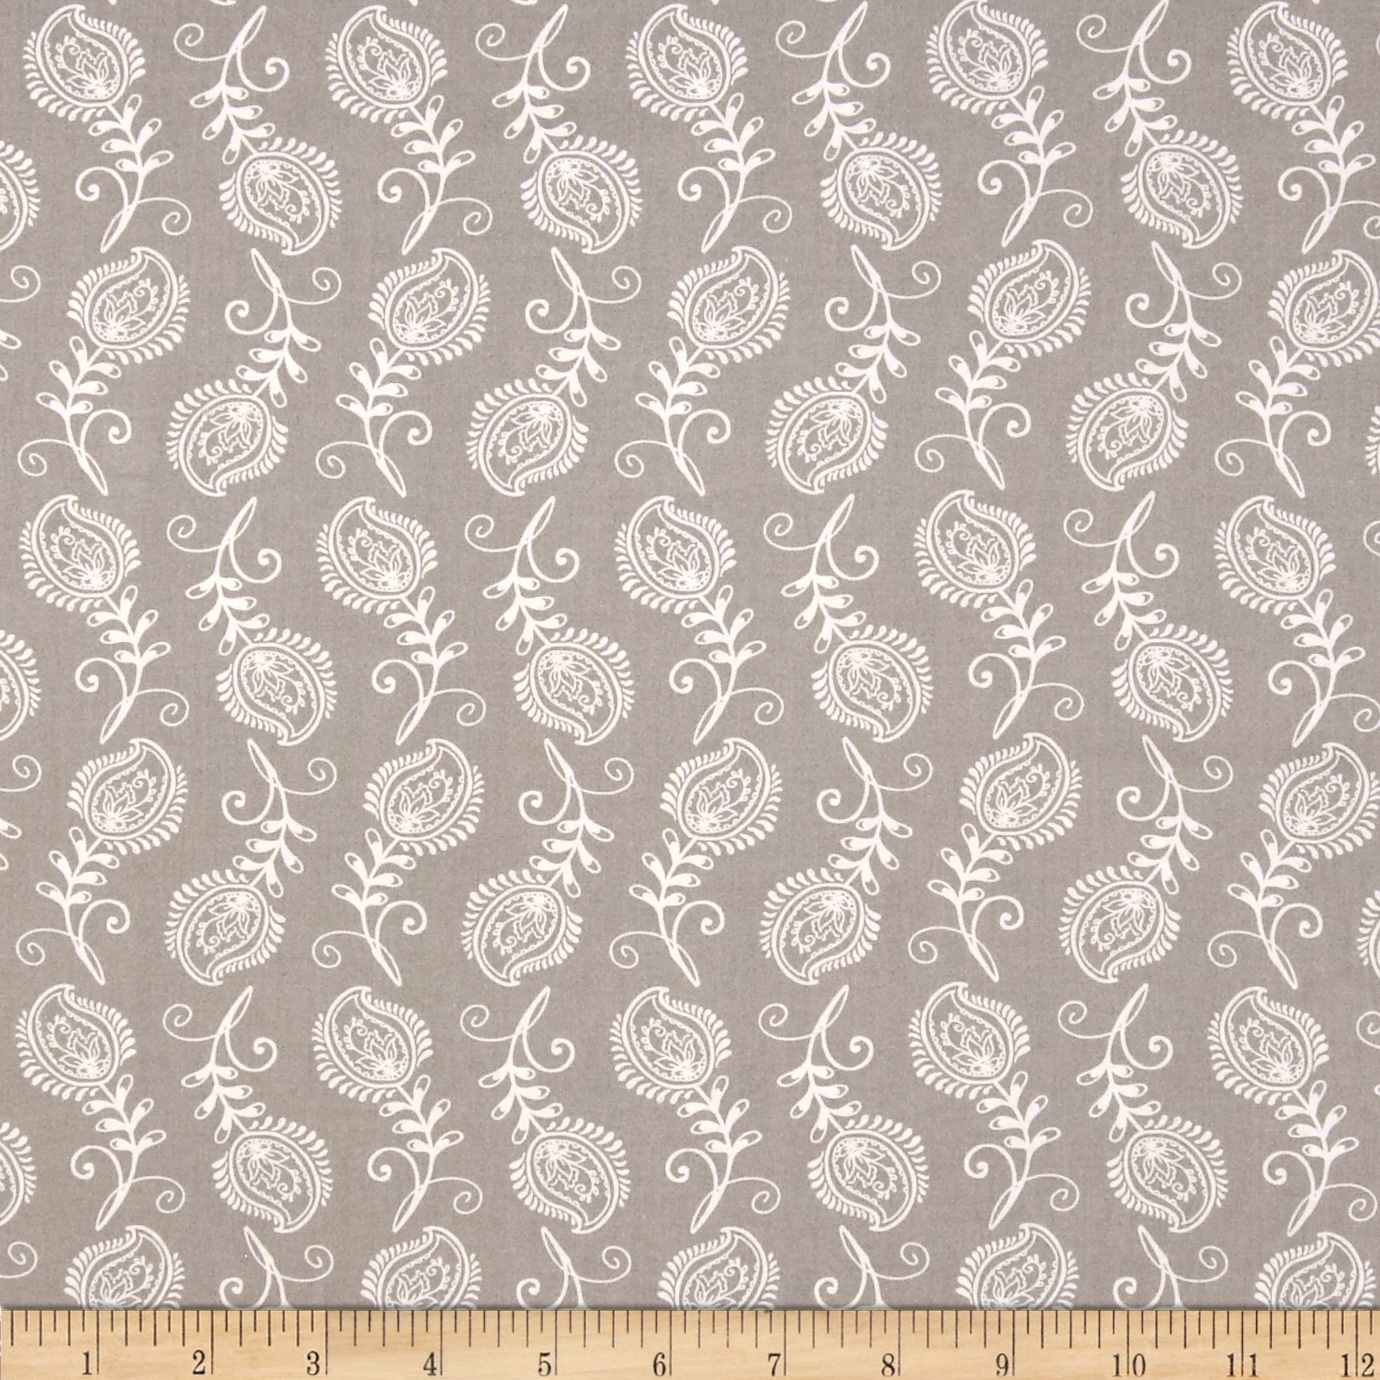 Contempo Feathers Grey/White Fabric by Santee in USA